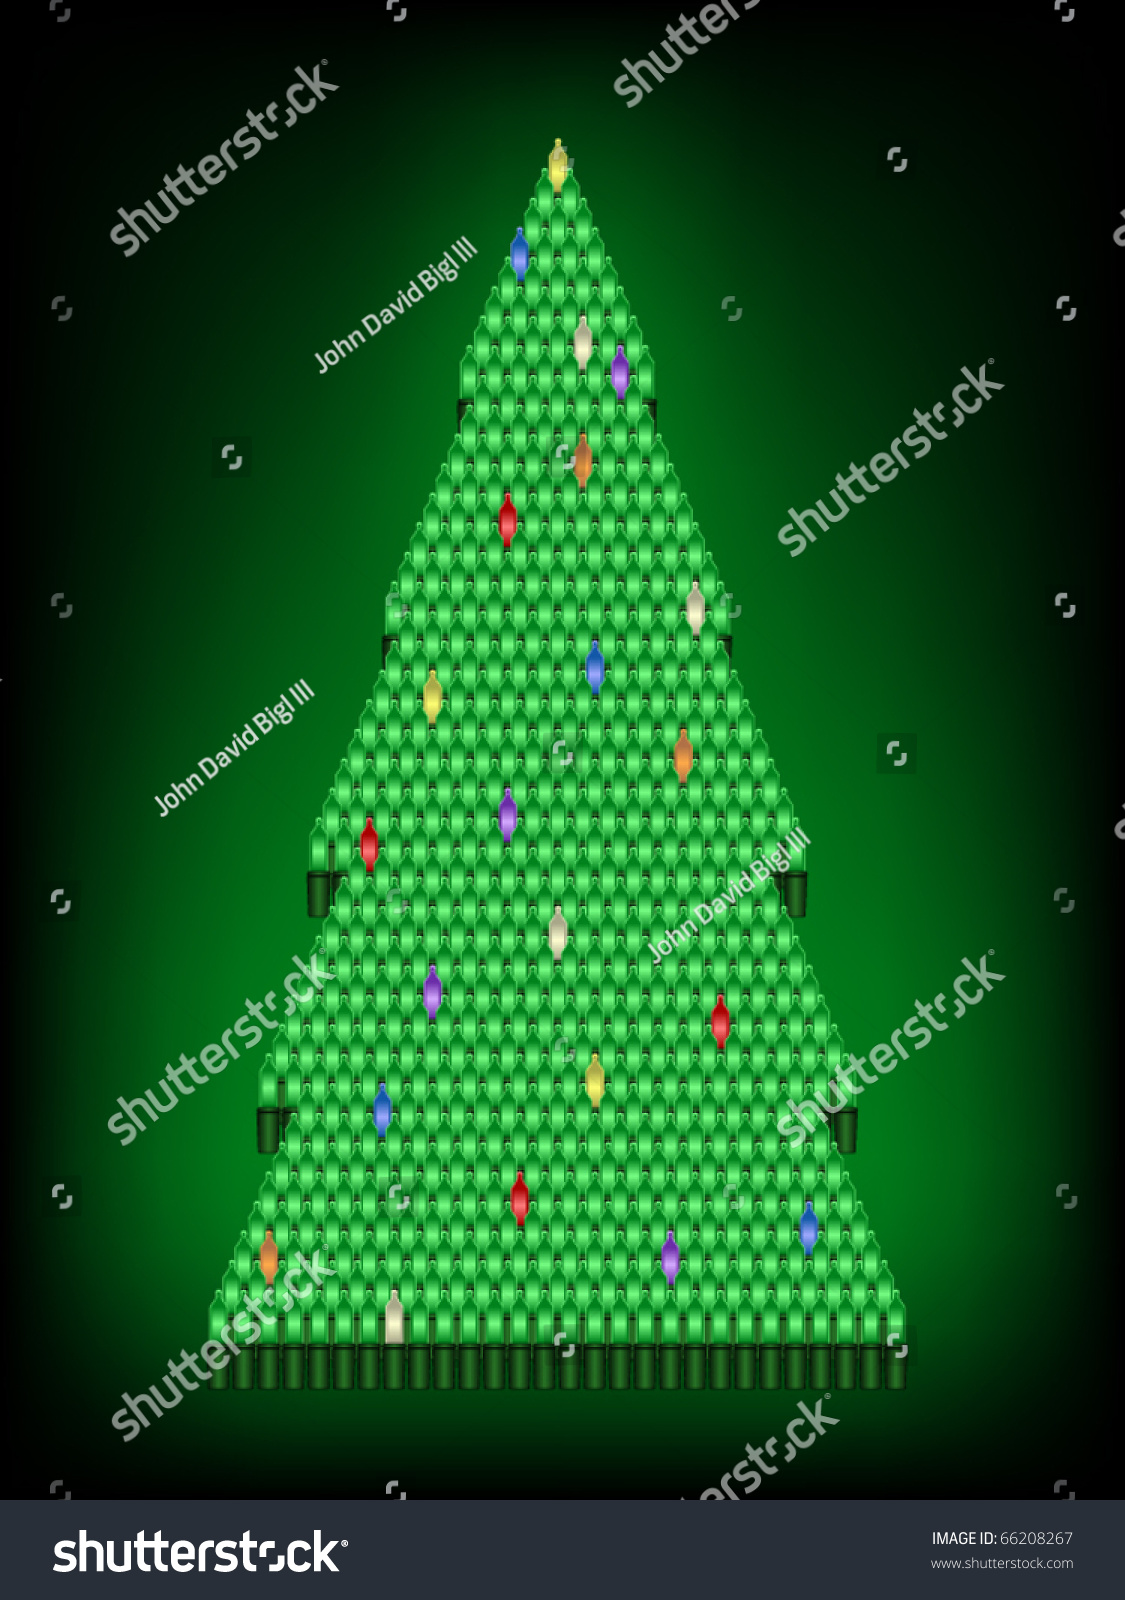 Christmas Tree Composed Bright Colored Lights Stock Vector 66208267 ...